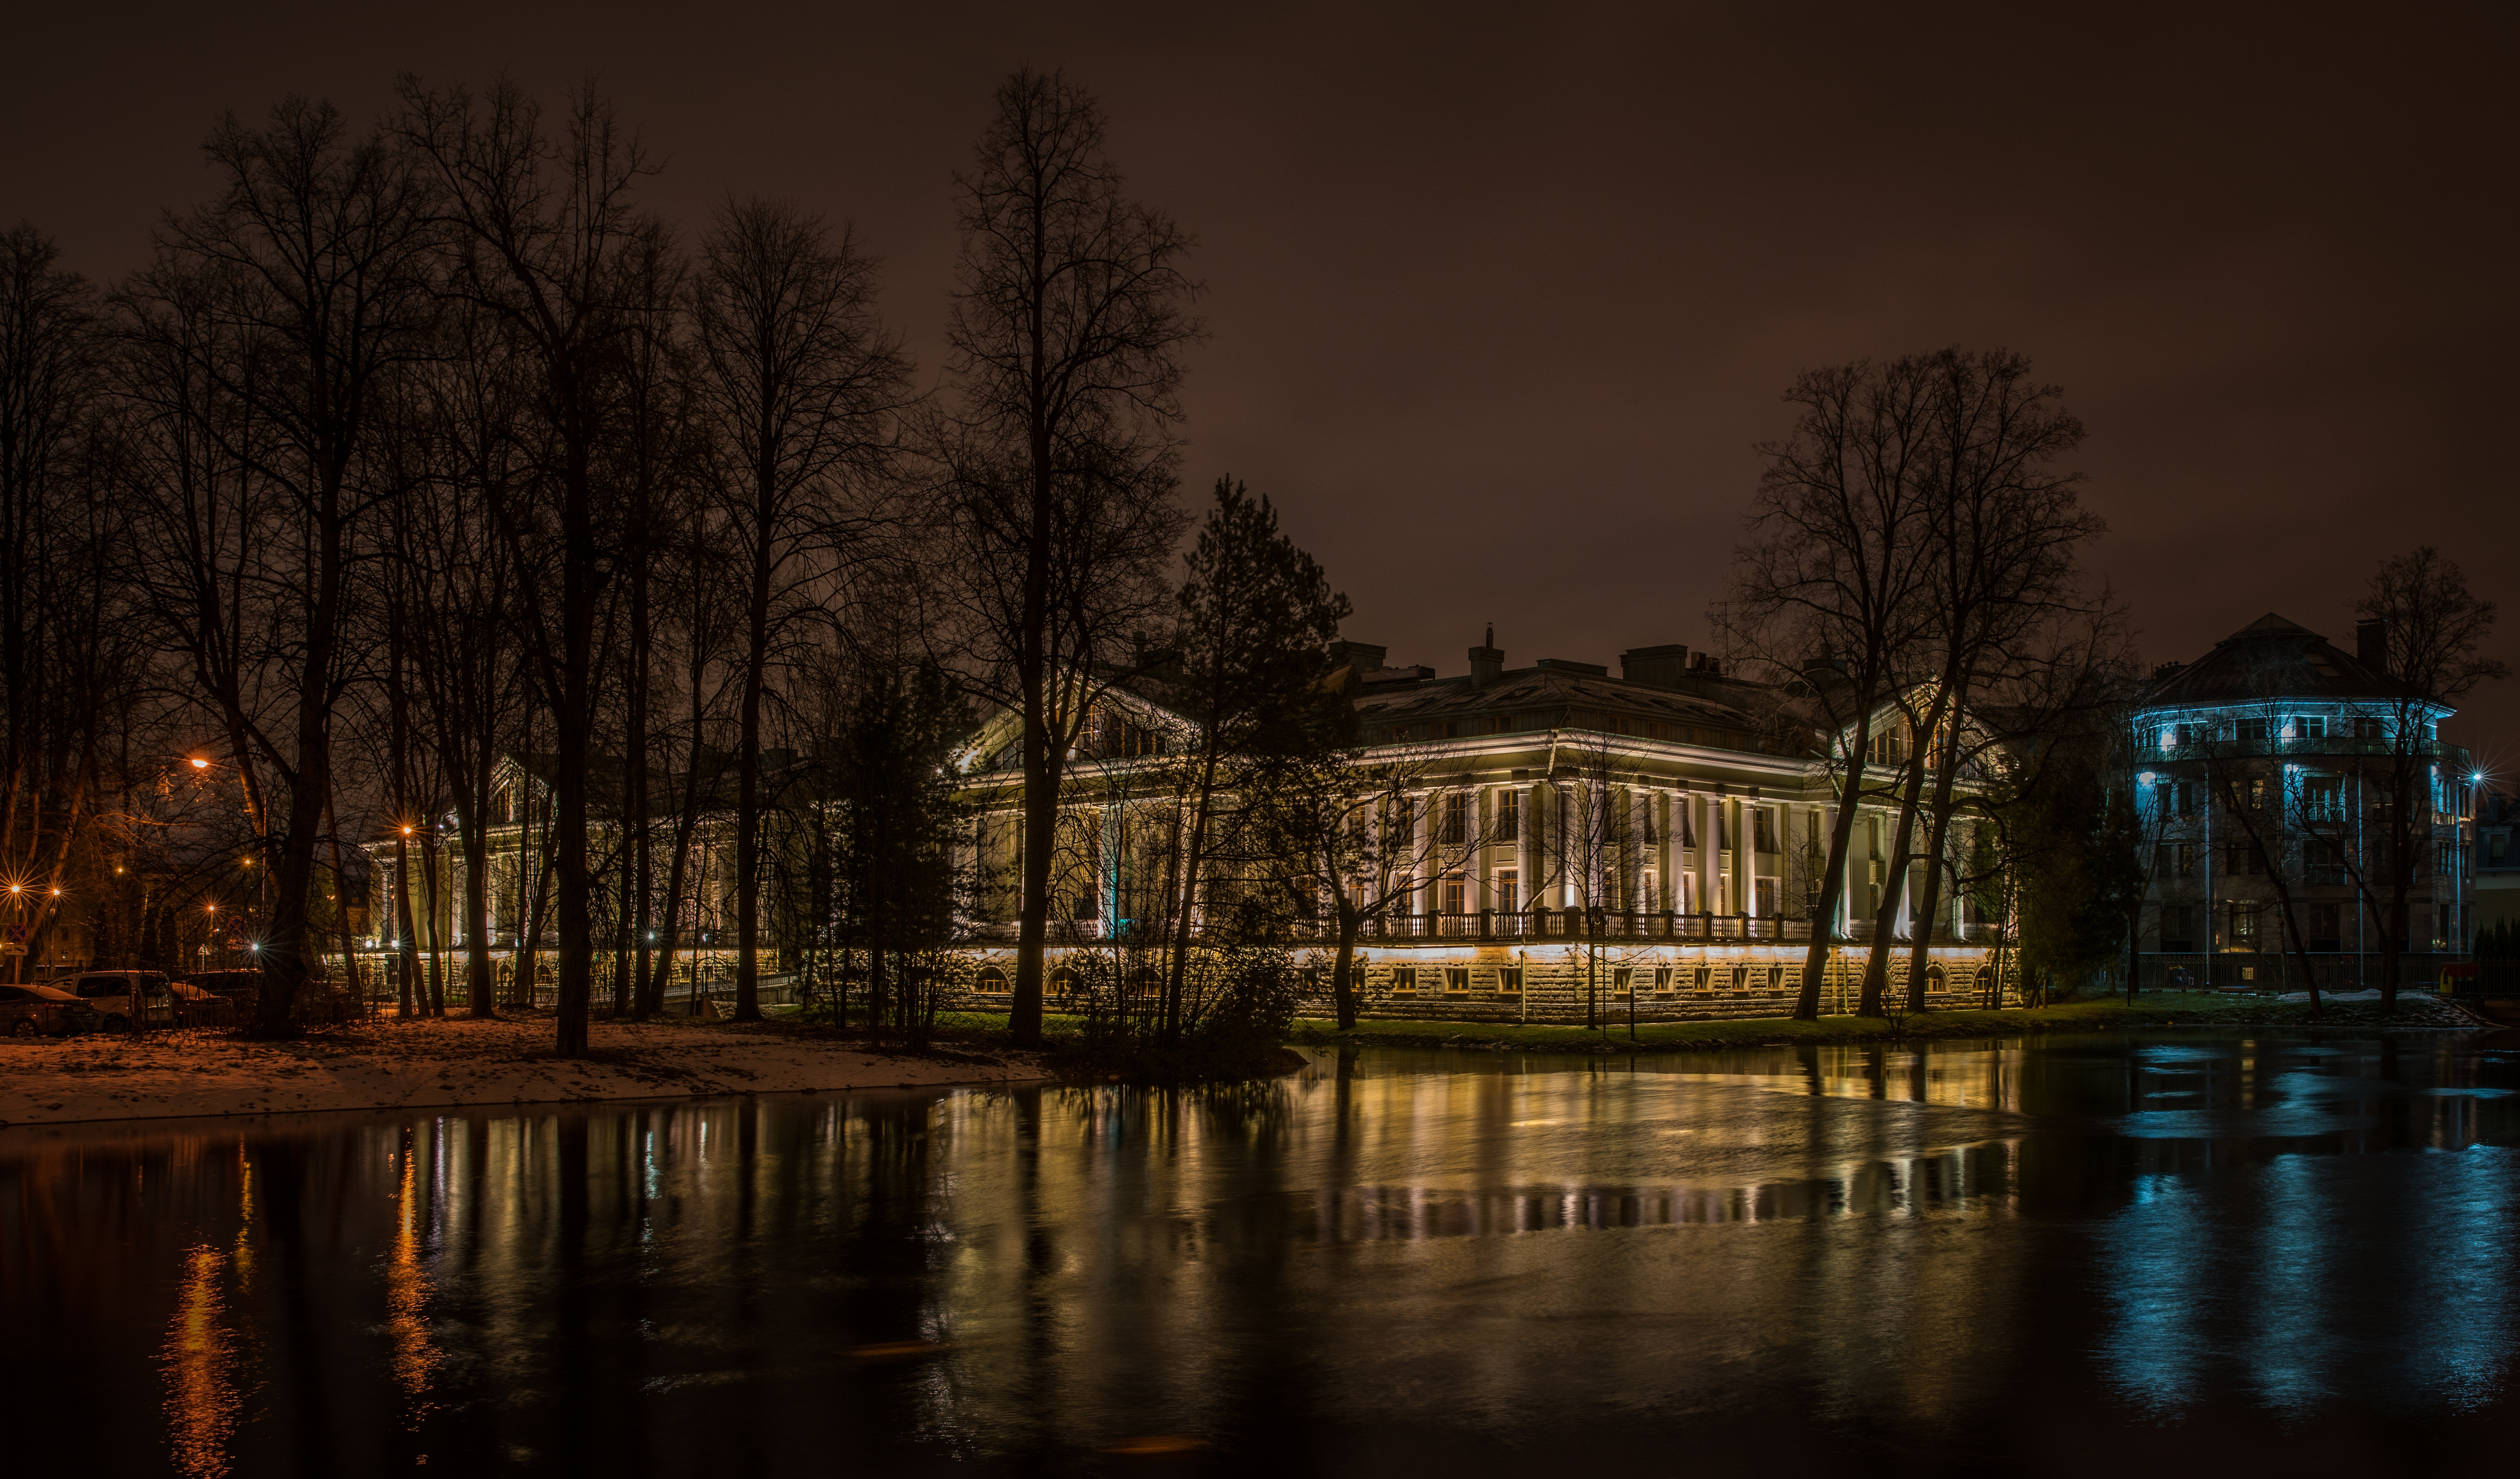 Palace during Night Time, Reflections, Palace, Outdoors, Silhouette, HQ Photo